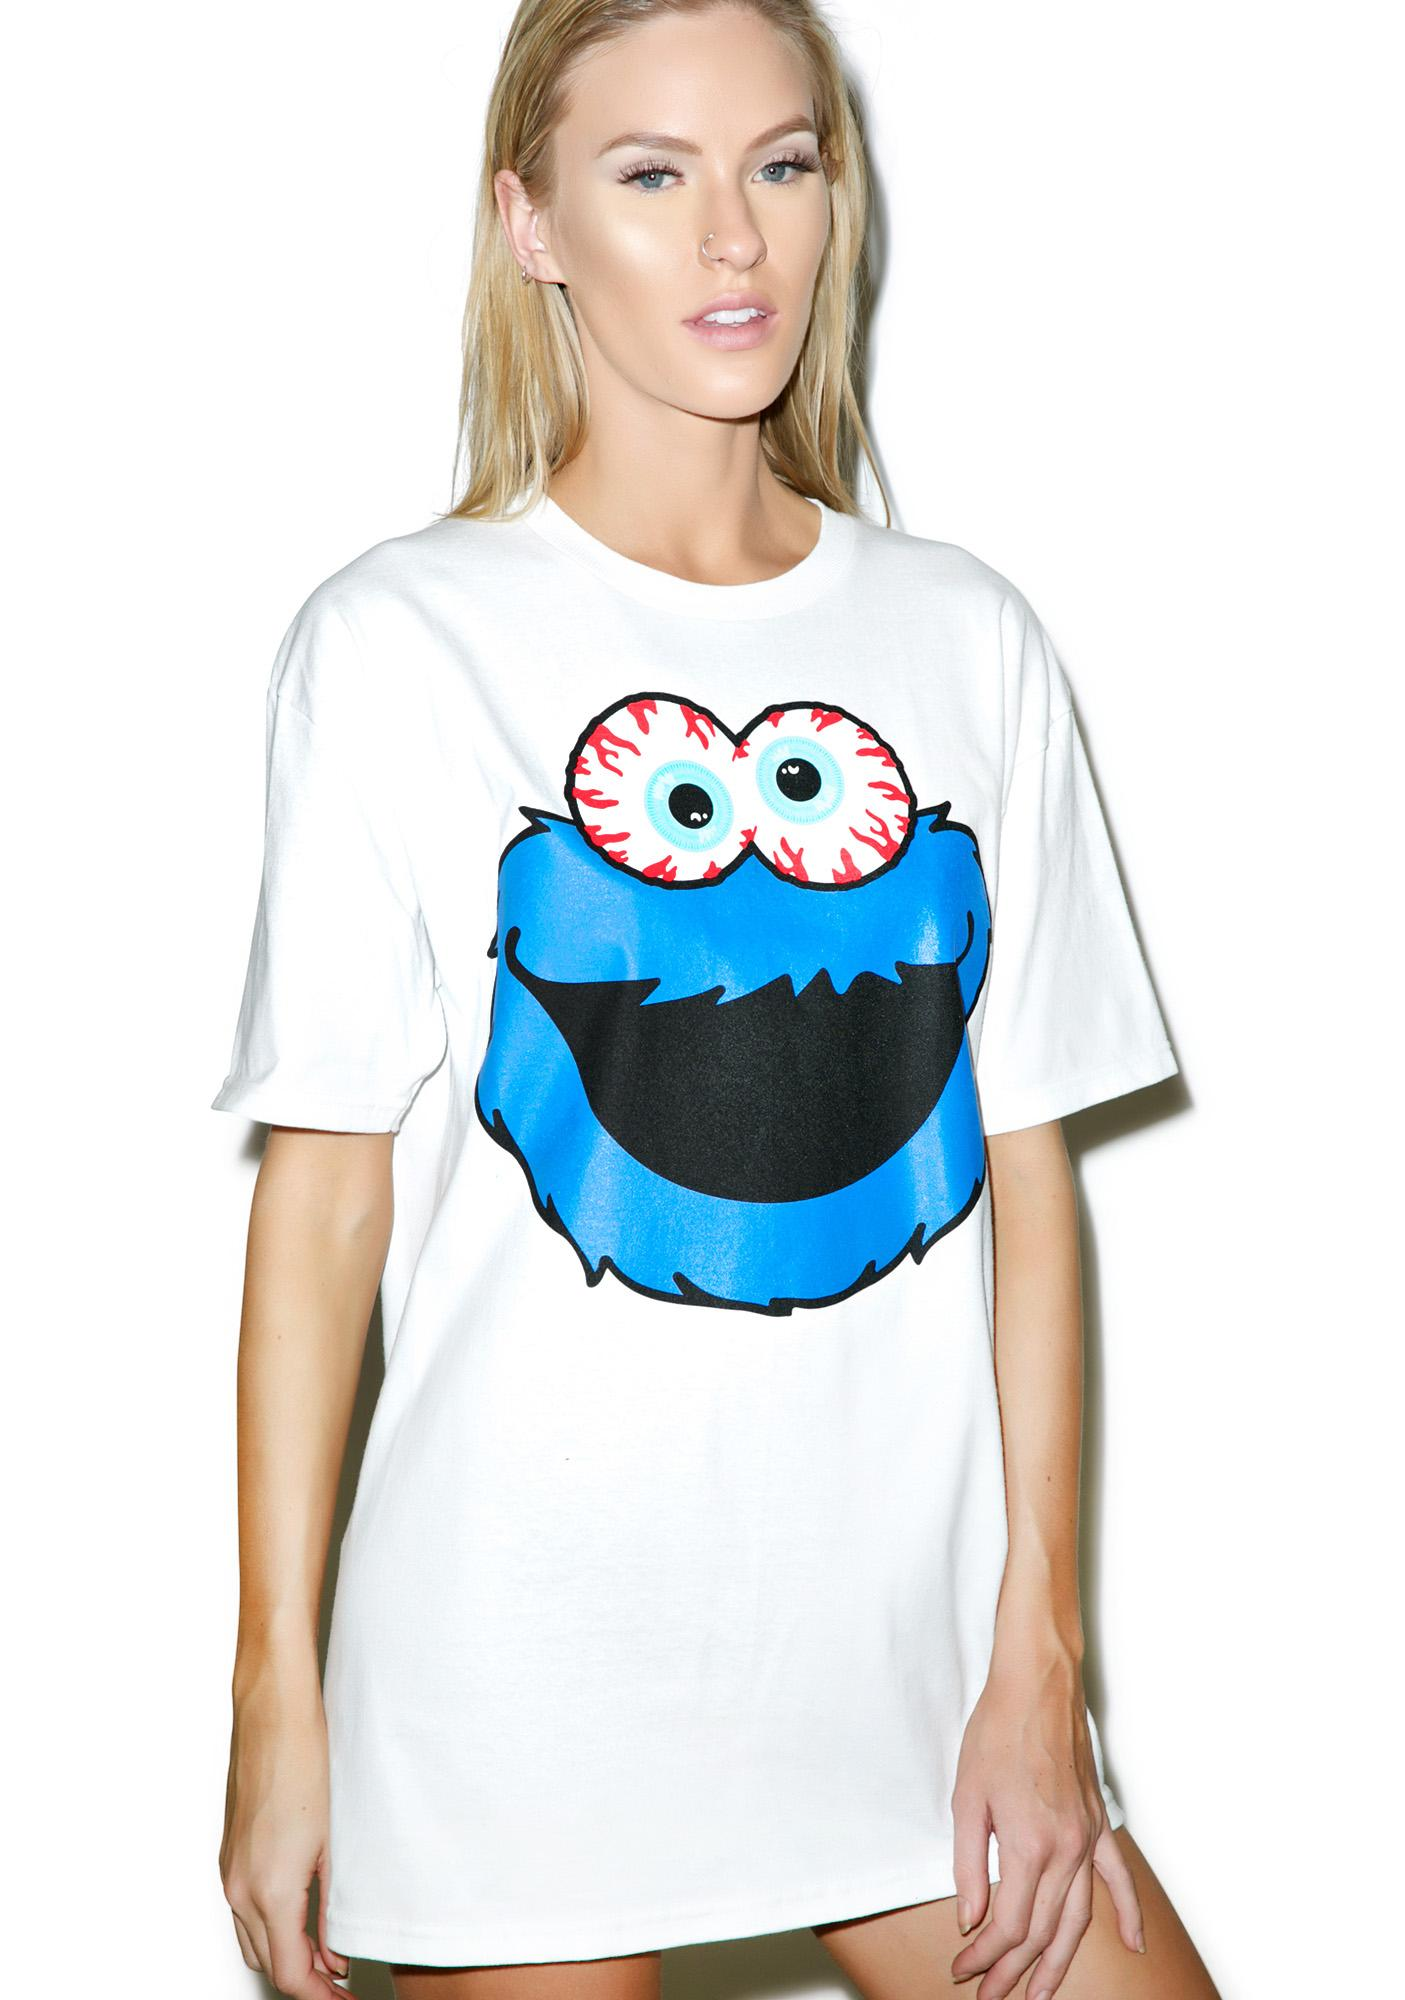 Mishka Keep Watch Cookie Monster Tee